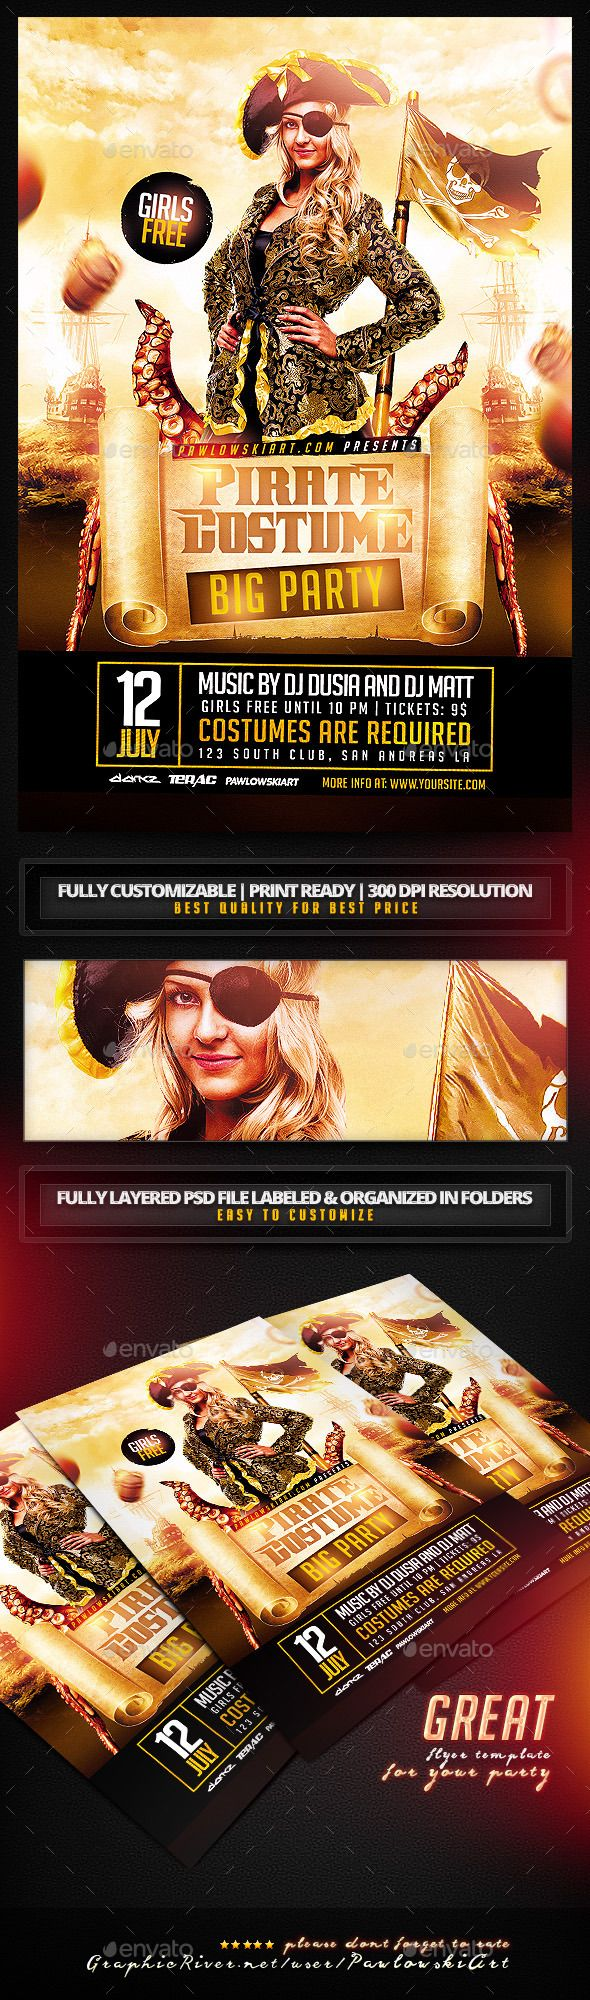 Pirate Costume Party PSD Flyer Template - Clubs & Parties Events